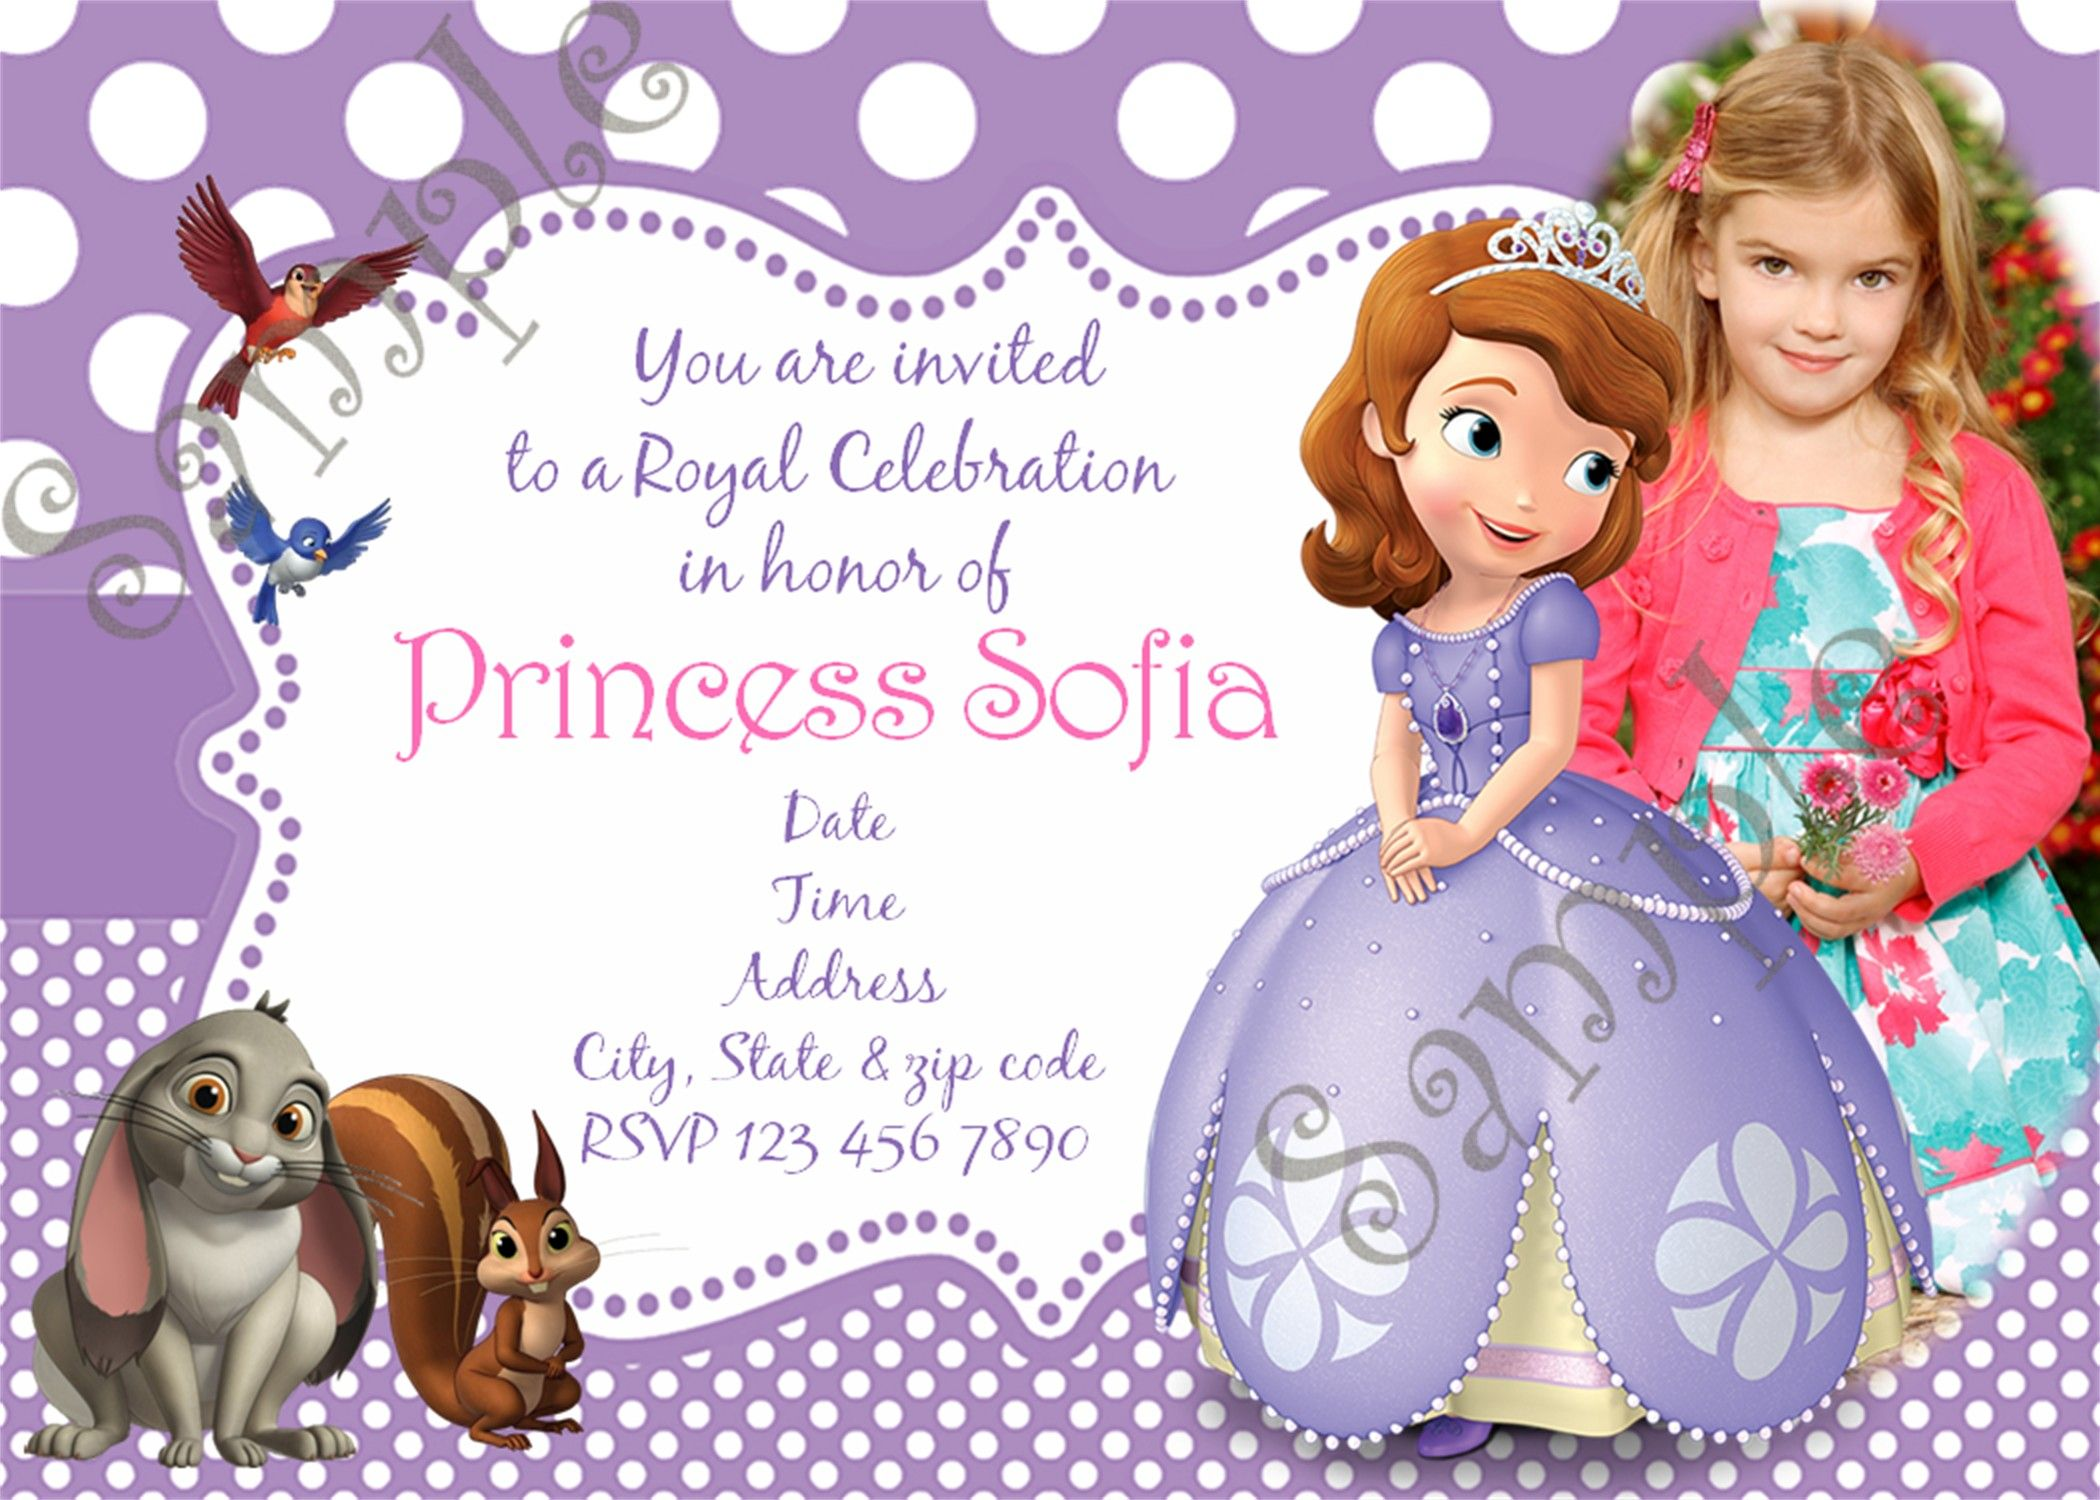 Sofia the first birthday party invitation sofia the first birthday sofia the first birthday party invitation filmwisefo